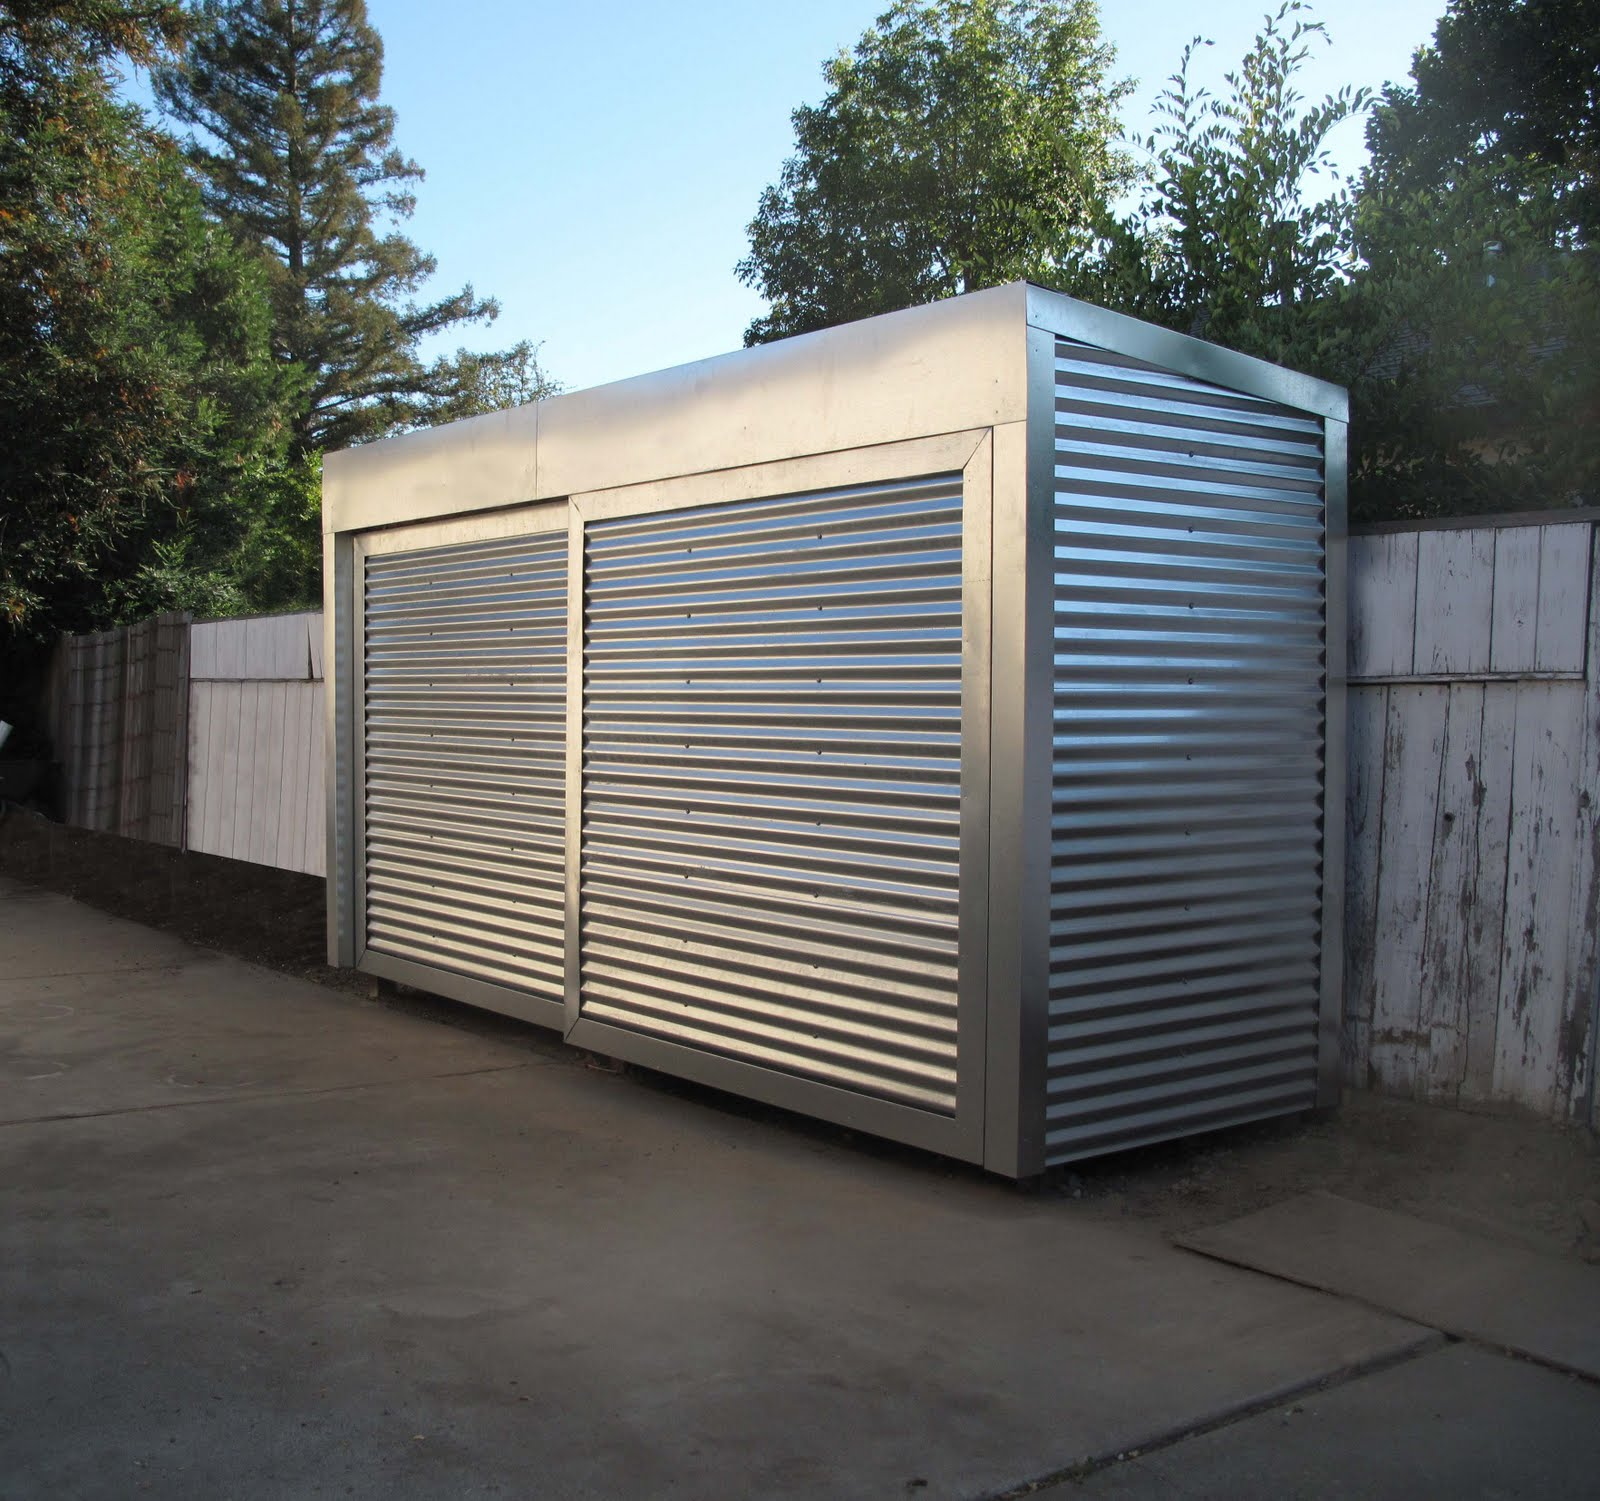 Simple Steel Garages With Two Levels Ideas (Image 9 of 10)